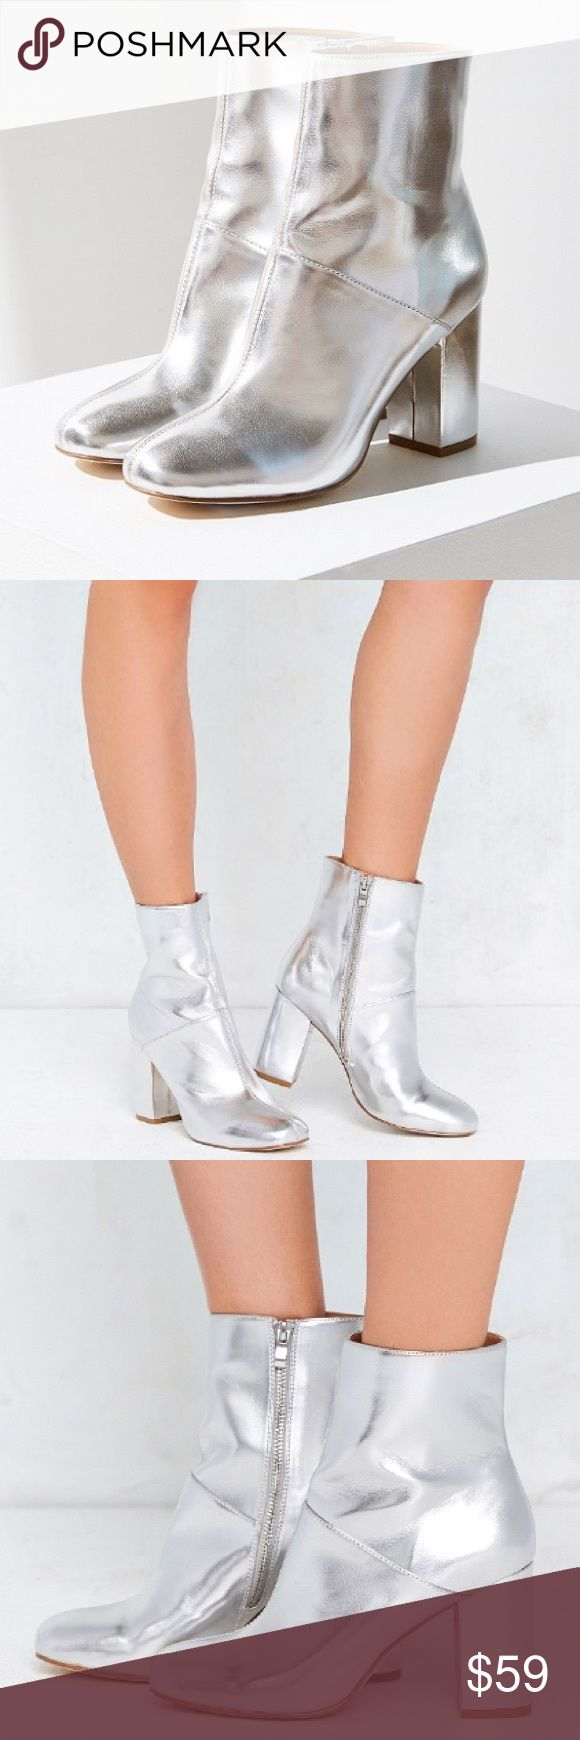 "Urban Outfitters Zelda Metallic Ankle Boot Brand new. Shine so bright you light up the room in these '60s-inspired metallic ankle boots. So mod, cut above ankle in a shiny vegan leather with inner ankle zipper closure. Finished with a sloping sole + covered block heel with rubber coating for perfect traction on the dance floor. Price is firm.   Content + Care - Polyurethane, rubber - Wipe clean  Size - Heel height: 3.5"" - Shaft height: 6"" Urban Outfitters Shoes Ankle Boots & Booties"